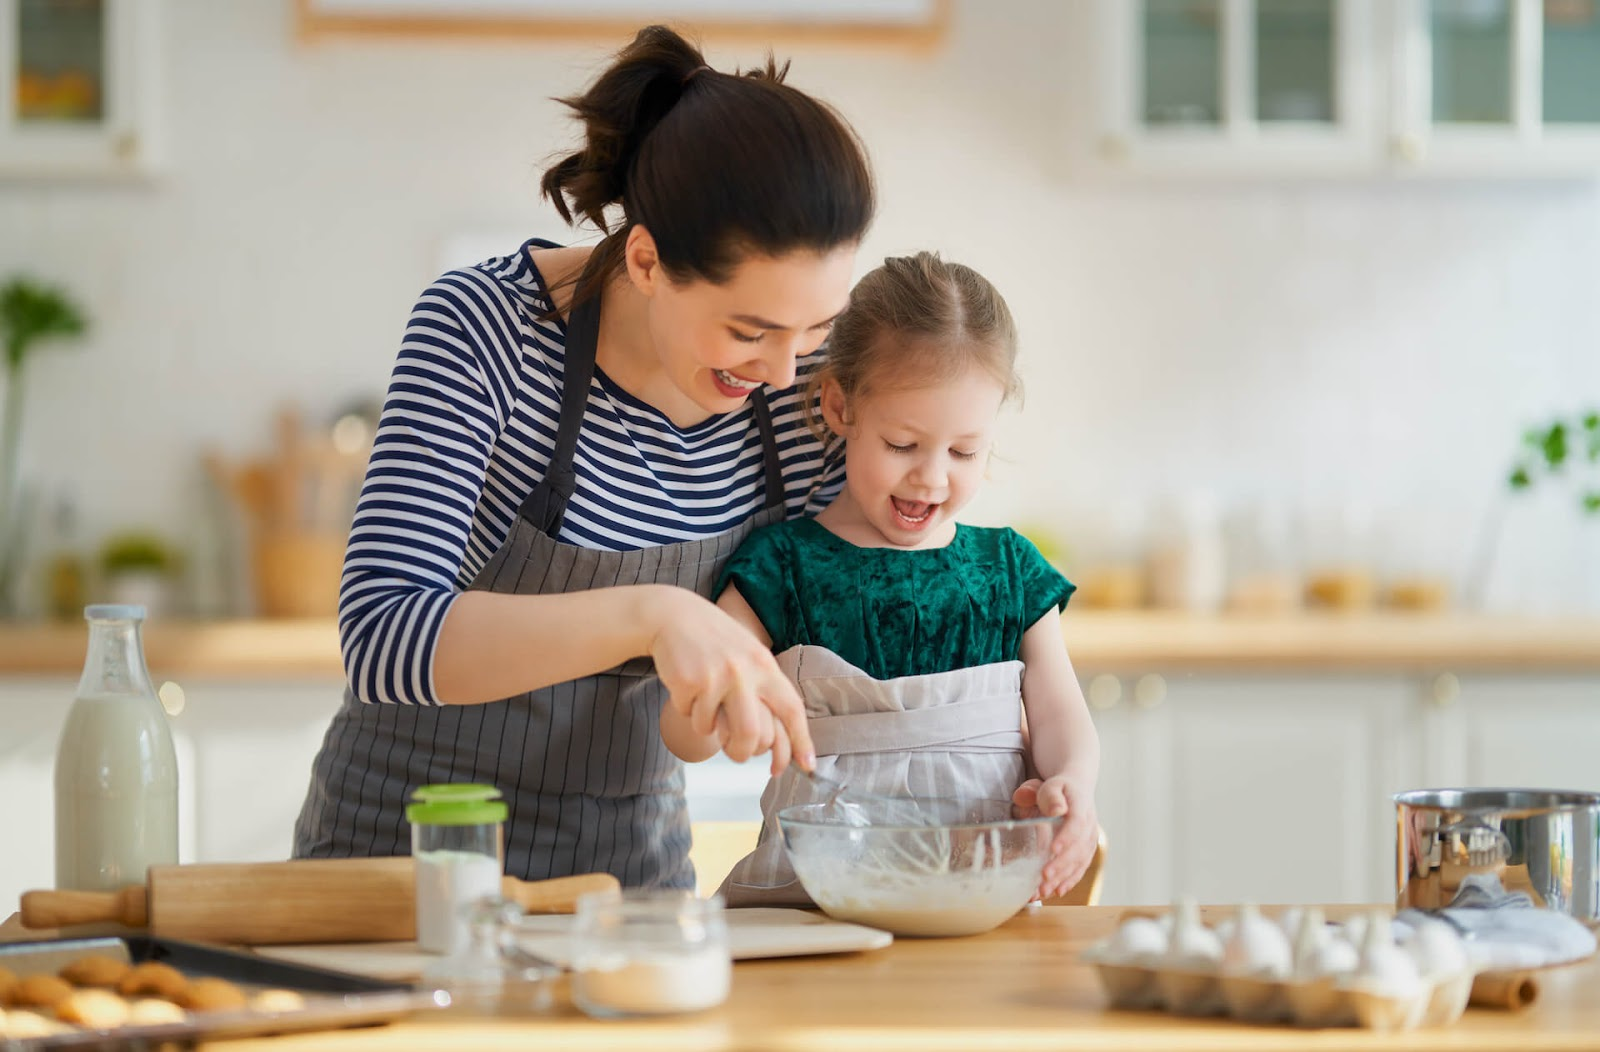 Mom and daughter baking together happily